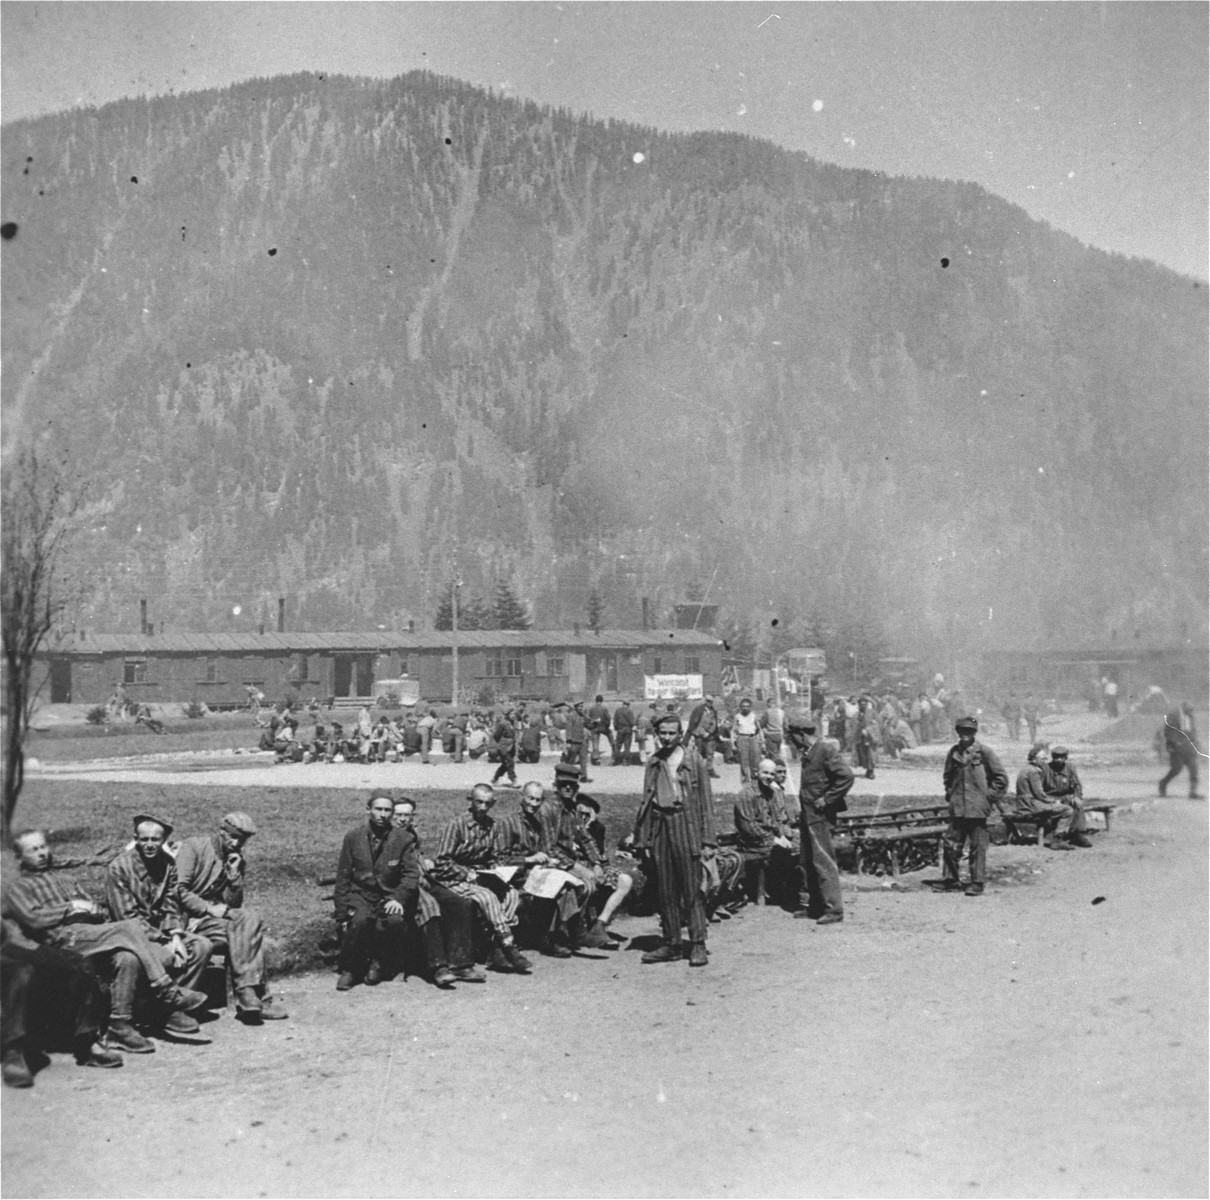 Survivors sit on benches along the perimeter of the former roll call area in the Ebensee concentration camp.